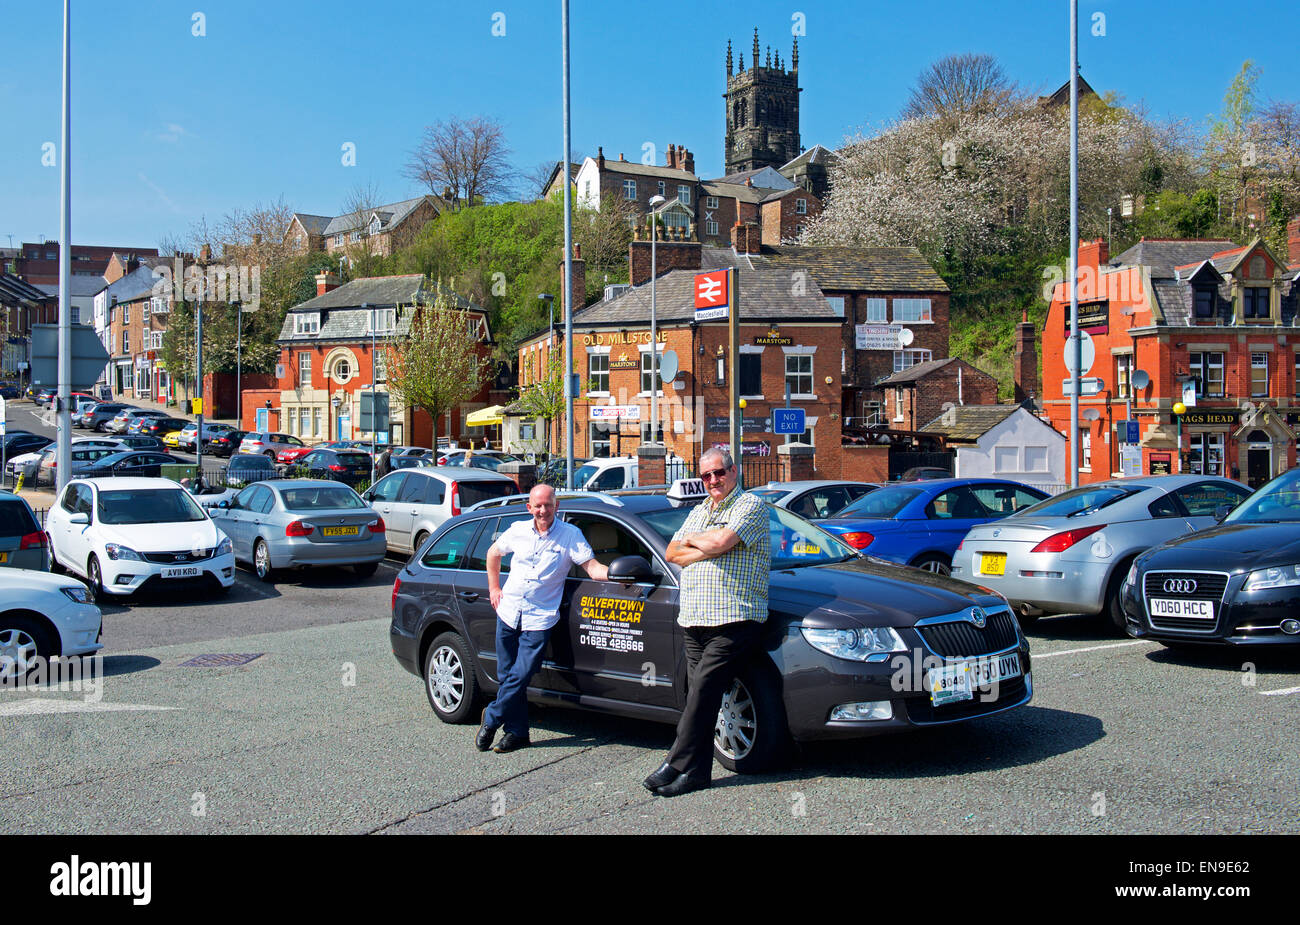 Cabbies at the taxi rank in Macclesfield, Cheshire, England UK Stock Photo